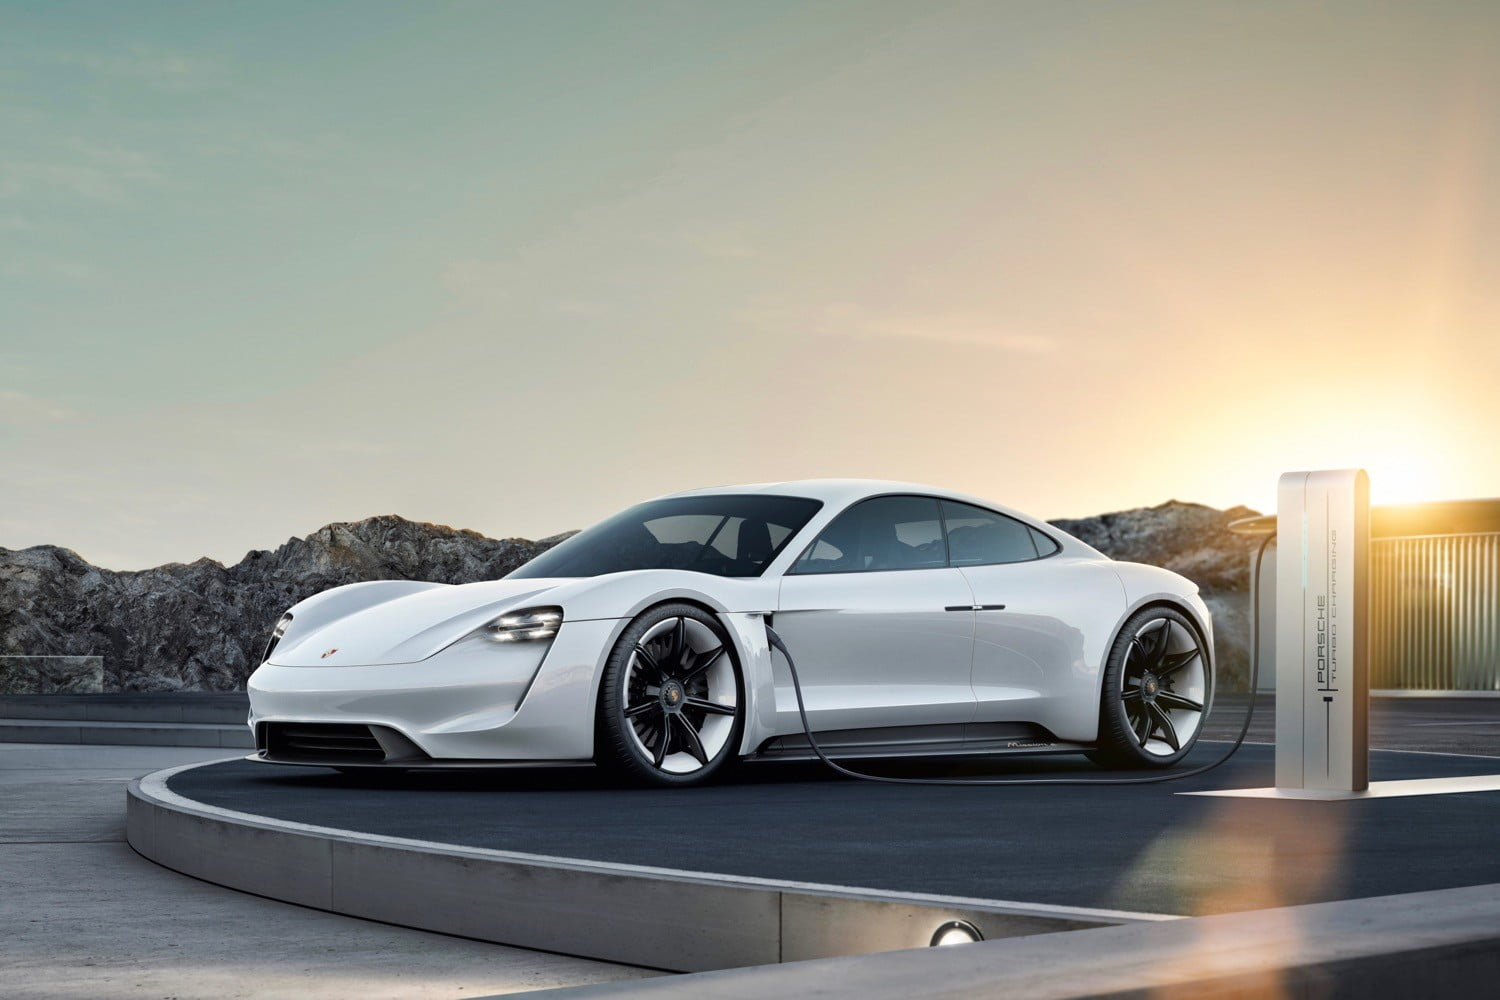 Porsche Taycan Electric Car Attracts More Than 20k Customer Deposits Digital Trends